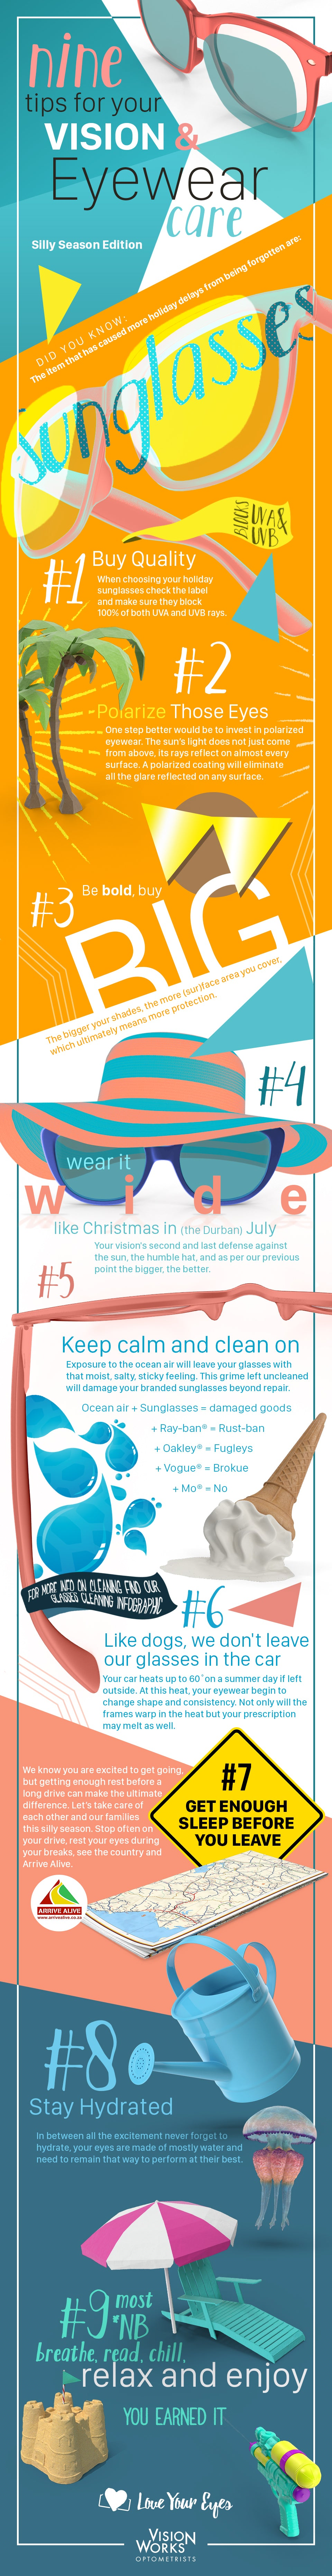 Tips on eyewear care, for a summer by the sea:  Summer is here South Africa; temperatures are peaking around 35 and higher, across the country the great migrations towards the coast are already underway. Some say the anticipation of our year-end rituals begins with the packing. Planned or spontaneous the first item on our list hands down is our sunglasses.  It is easy to understand why the first holiday essential on the pack list, whether we're 16 or 76 years old, are our sunglasses. A statement of our identities and the first line of protection for our vision. It's no wonder the sunglasses industry is worth an estimated $90 Billion!   We know your Ray-Ban® sunglasses and prescription shades are an investment of more than just money, so we put together this list to help you make them last.   Here are a few tips on caring for your vision and your eyewear this Summer:    1. Start By Buying Quality: One of the best investments you can make this summer is to buy sunglasses that completely block out the sun's rays. Check the label and make sure your shades block 100% UVA and UVB rays. This investment should not break the bank, but it will make the difference in the longevity of your vision.   2. Polarize Those Eyes: One step better would be to invest in polarized eyewear.  The sun does not just come from above, its rays reflect on almost any surface, roads/water/snow/beach sand. In short, whether you are spending your holiday's skiing in the alps or deep sea fishing off our home shores, a polarized coating will eliminate all the glare reflected on any surface.  Also, note if you are a walking fish who spends their entire holiday in the water, look at investing in swimming/diving goggles with polarized lenses.  3. Be Bold, Buy Big: The African sun is not known for its subtlety; its fierce intensity has inspired bold fashion necessities across Africa for many decades, and eyewear is no different. The bigger your shades, the more (sur)face area you cover, which ultimately means more protection.   4. Wear It Wide Like Christmas In The Durban July: The humble hat is your vision's second and final defence from the sun, and as per our previous point, the bigger, the better.   5. Keep Calm and Clean On: Walks on the beach are some of the best parts of visiting the sea, but exposure to the ocean air will leave your glasses with that moist, salty, sticky feeling. Not only is it gross to not clean off but leaving it as is will damage your branded sunglasses beyond repair.  Sea salt air + sunglass material = rust and damage.  Sea salt + prescription eyewear = no more prescription.   6. Get Enough Sleep Before You Leave: We know you are excited to get there, but getting enough sleep before your drive can be the difference between an hour's delay or not arriving at all. The scary truth about holiday seasons are the fatality rates on the road, so let's take care of our families and each other this year and arrive alive.     7. Like Dogs, We Don't Leave Our Glasses In The Car: Your car could heat up to over 60 degrees Celsius on a 30-degree day if left uncovered in the sun. At this temperature, the material that make up your eyewear begin to change shape and consistency. Not only will the frames warp in the heat but your prescription may melt as well. The lesson here never leave your glasses in the car, on the dashboard or in the cubby.   8. Hydrate: In between all the excitement never forget to hydrate, your eyes are made of mostly water and need to remain that way to perform at their best.   9. Most Vital: The most important thing you can do to safeguard the health and well being of your eyes is to relax and enjoy your holiday. Use the break to detox from your computers a  little, switch off, get enough rest, read, chill, exercise, and really enjoy your holiday, you earned it. Once you are well rested you will feel brand new and ready to take on 2018.   By  Tash Casey